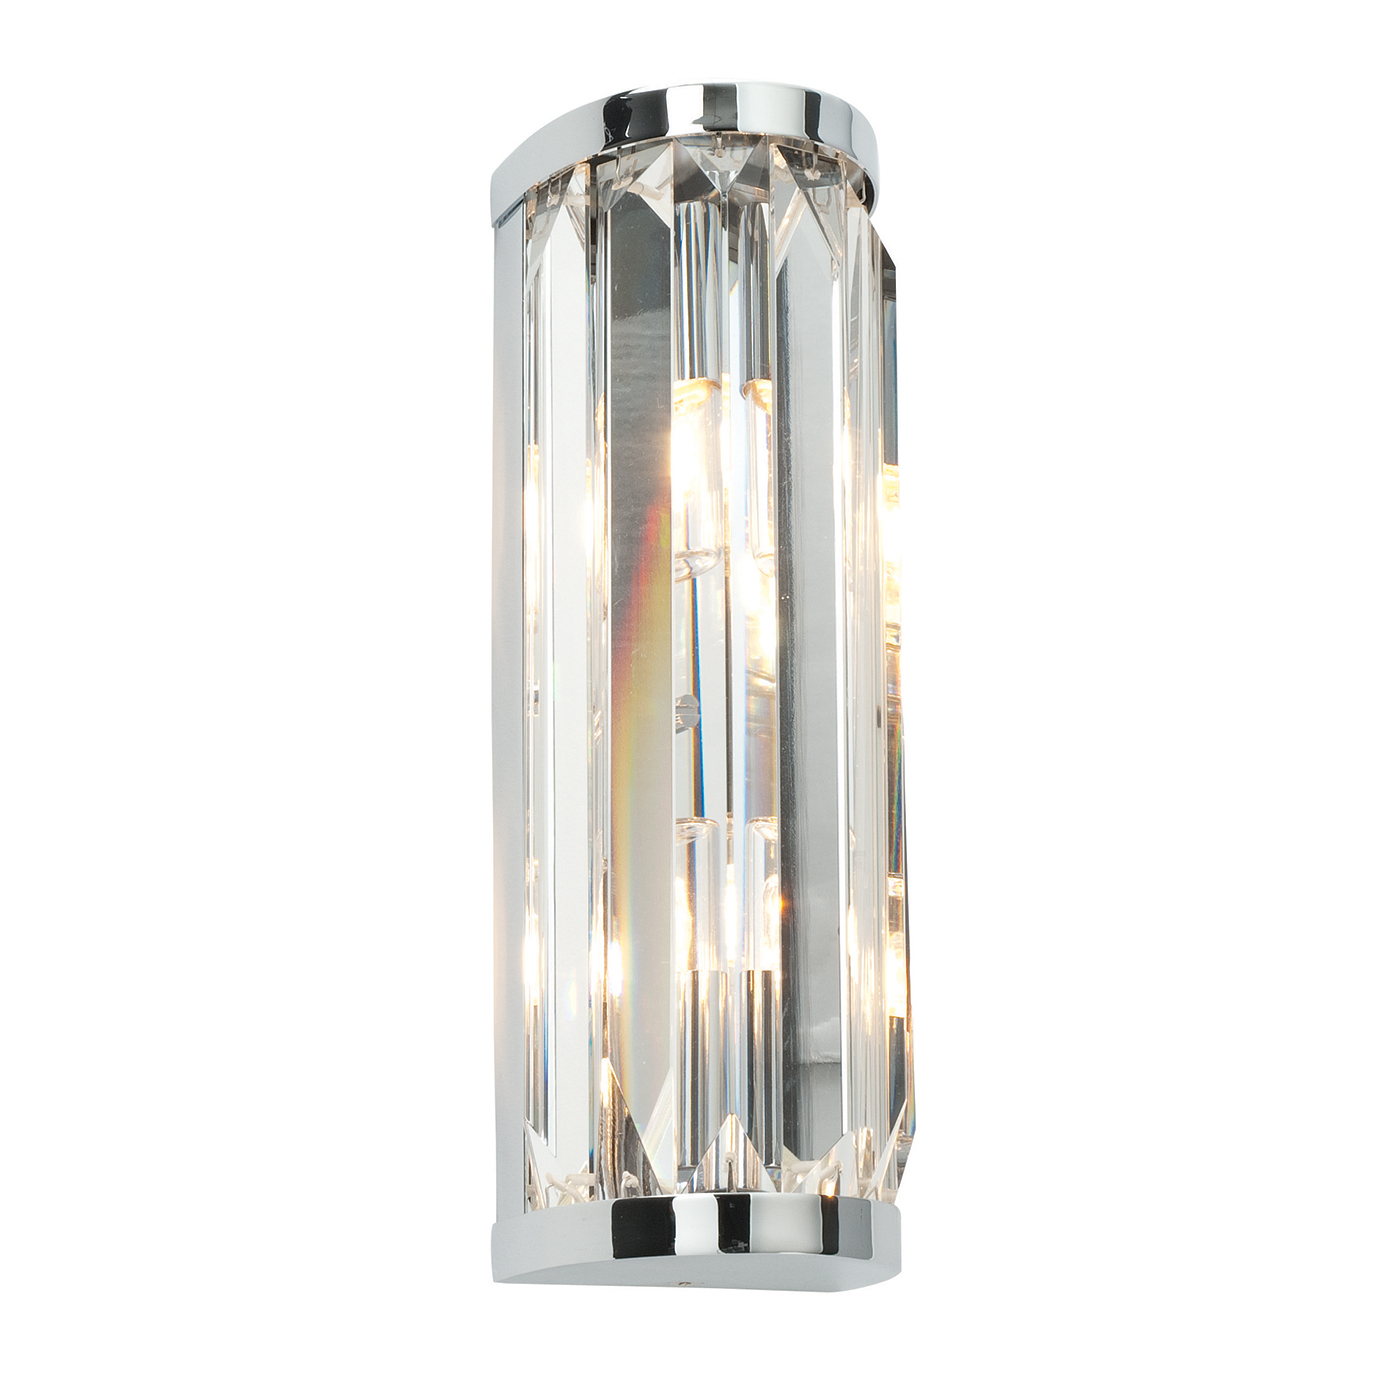 Endon Crystal 2lt bathroom wall light IP44 18W Chrome & clear crystal (k9) glass Thumbnail 1